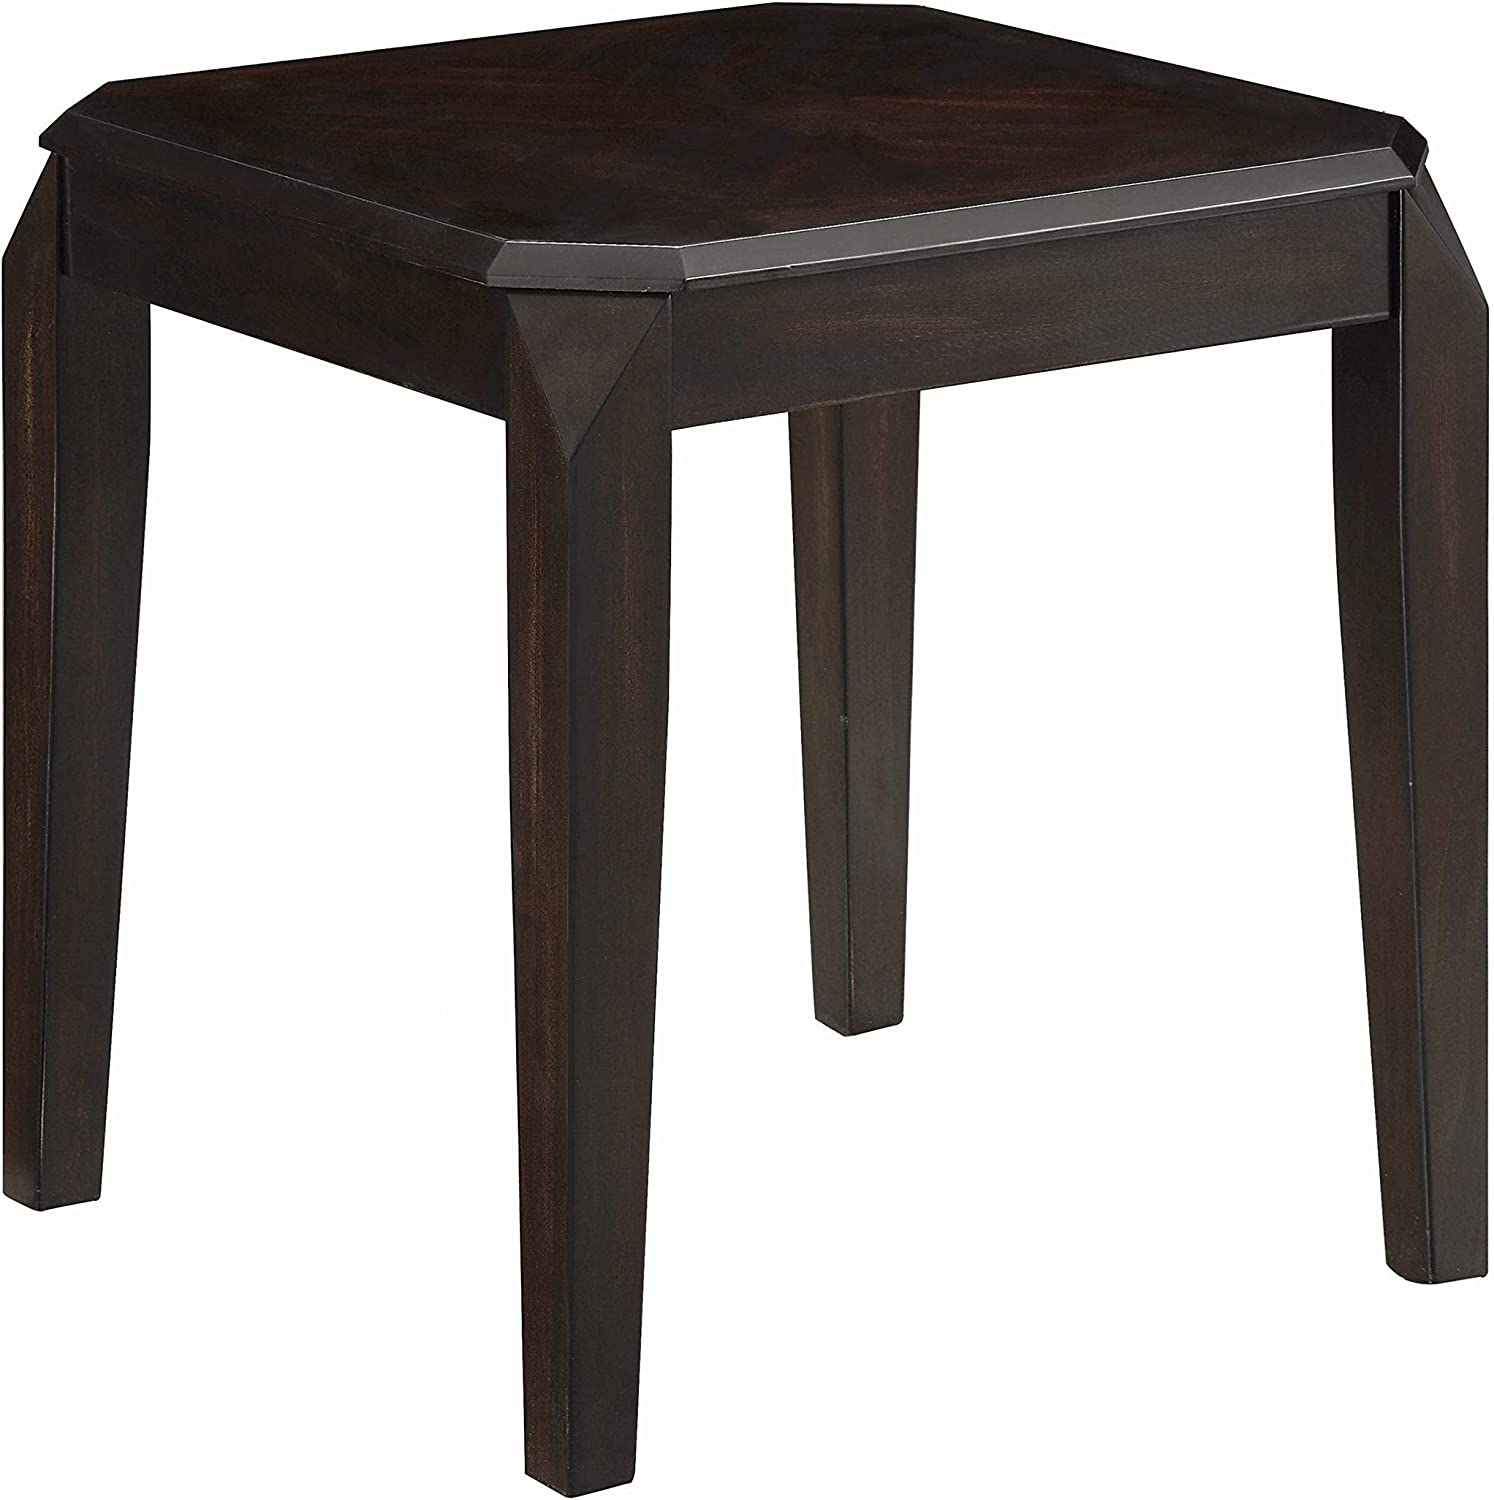 Coaster Home Furnishings Square End Table, Walnut